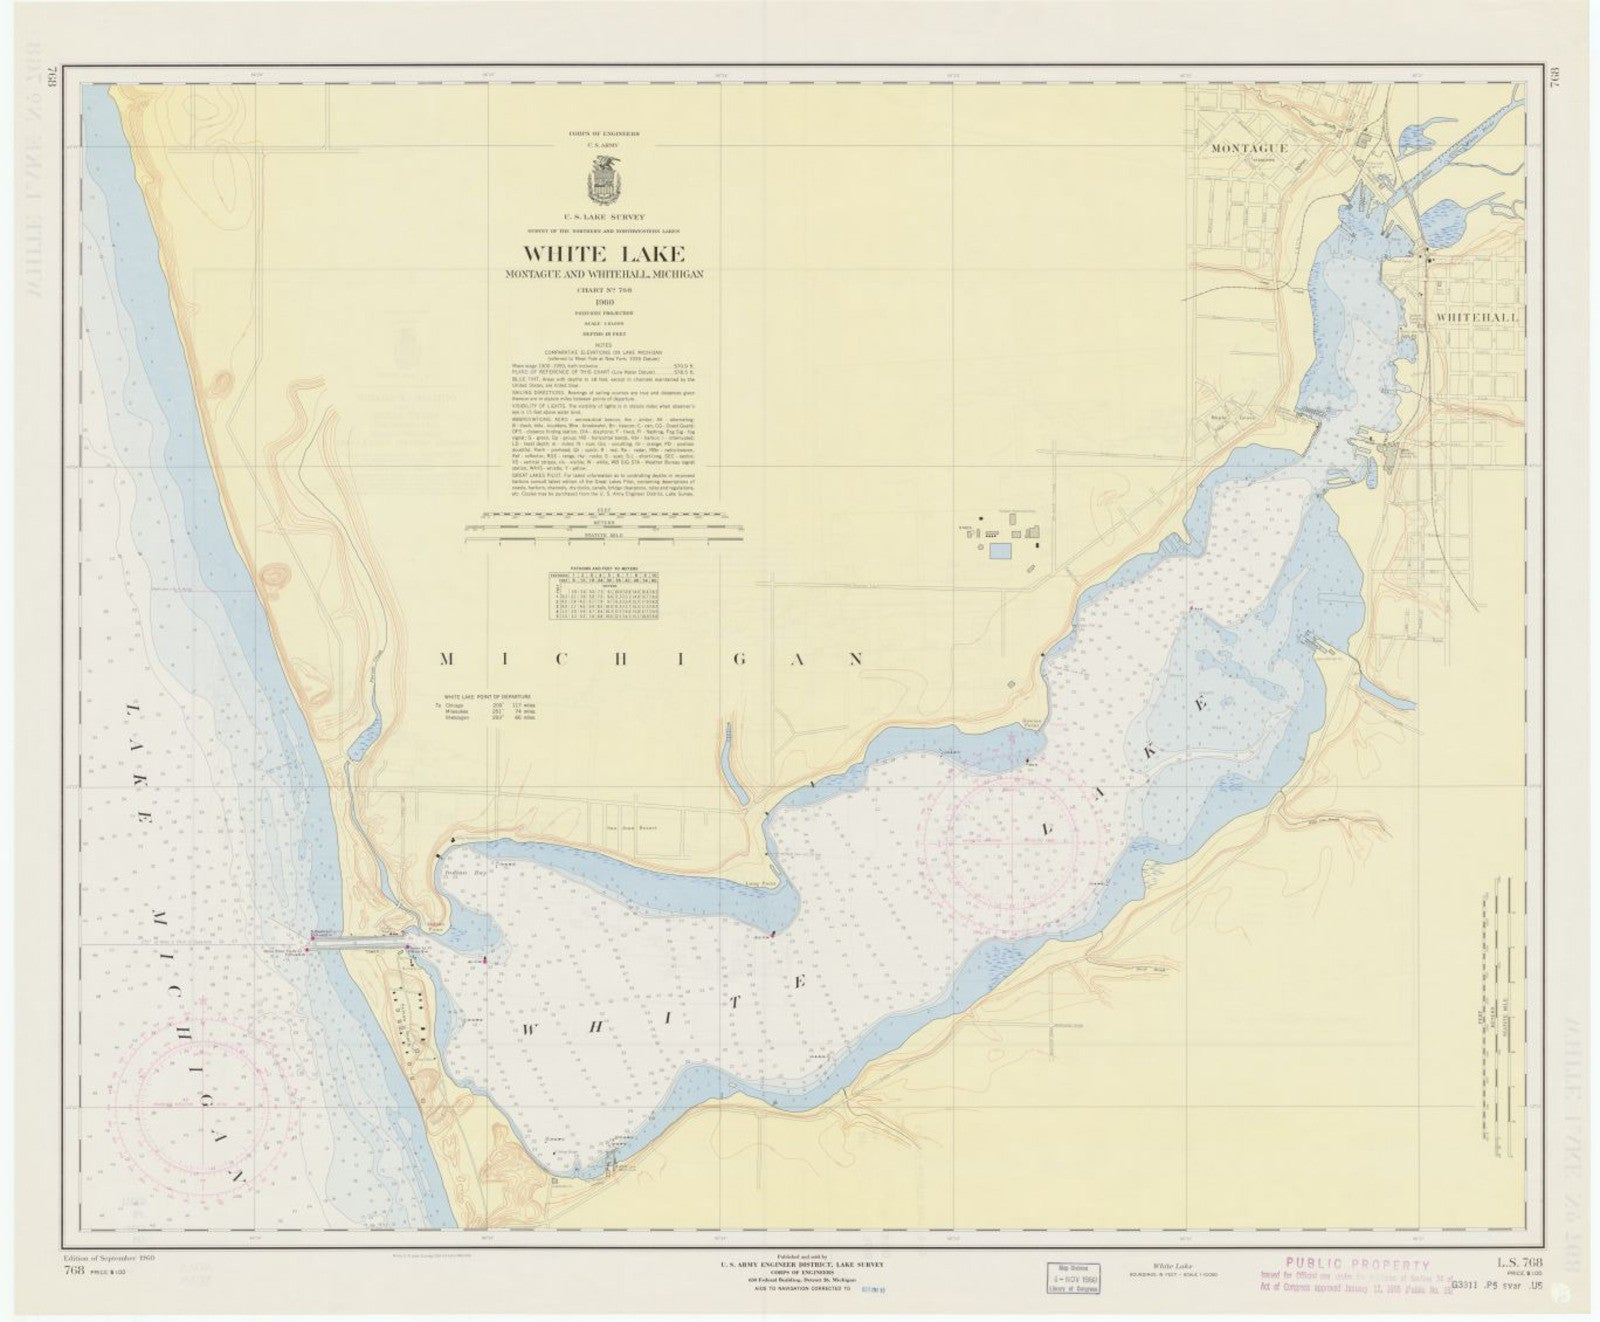 Print Of White Lake Montague And Whitehall Michigan Poster On